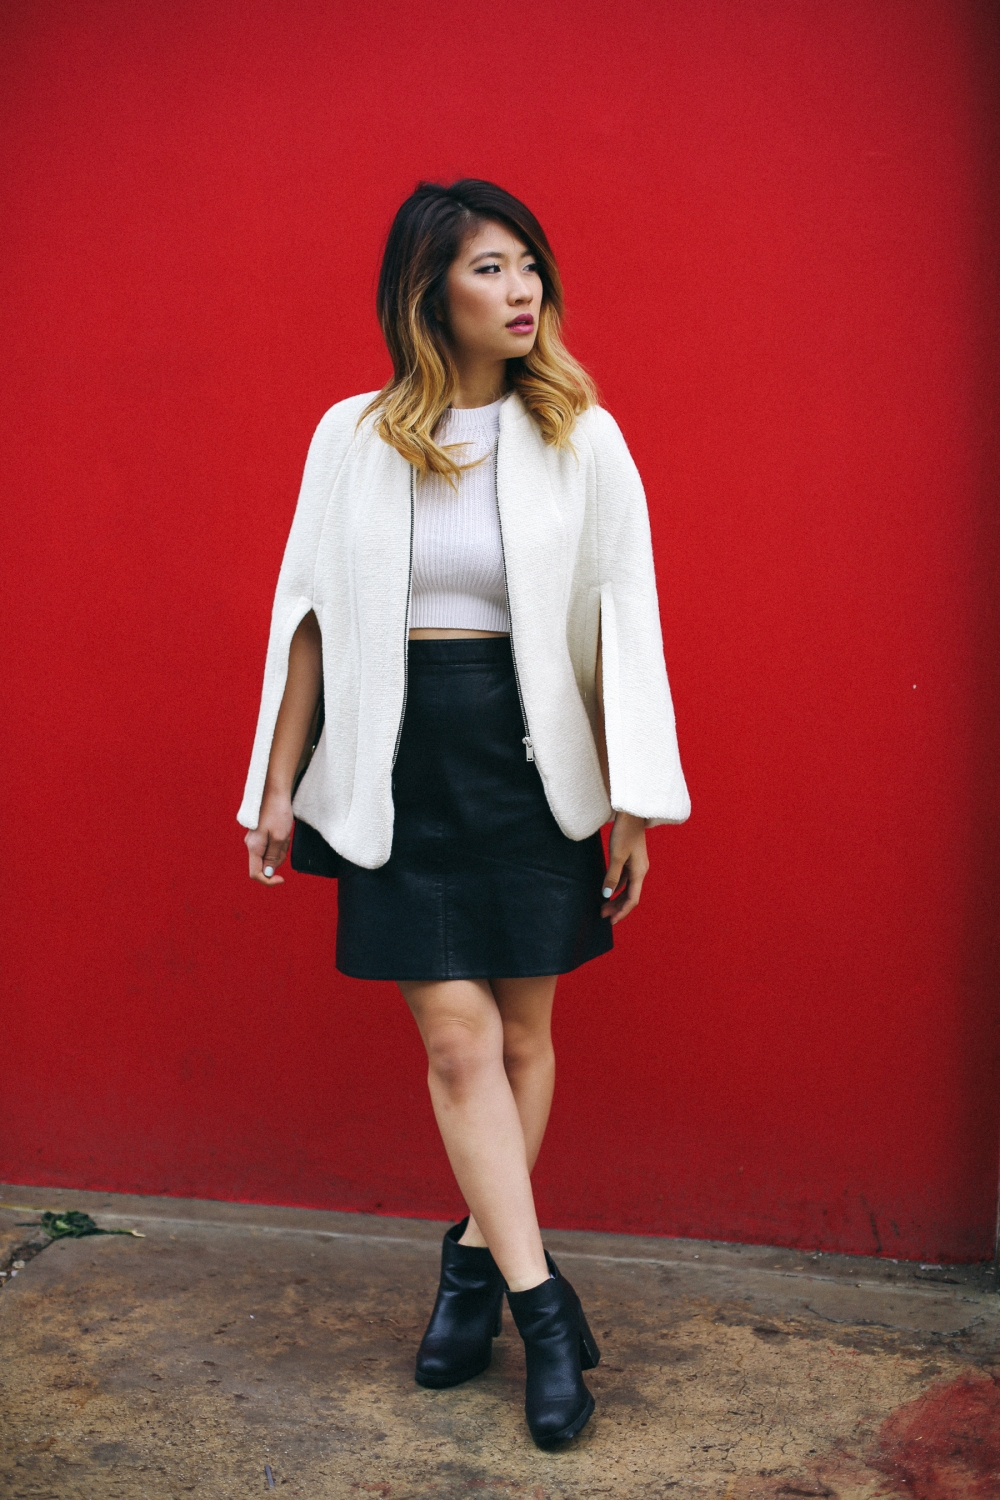 Ally-Chen-Black-Skirt-White-Cape-Jacket-1747.jpg